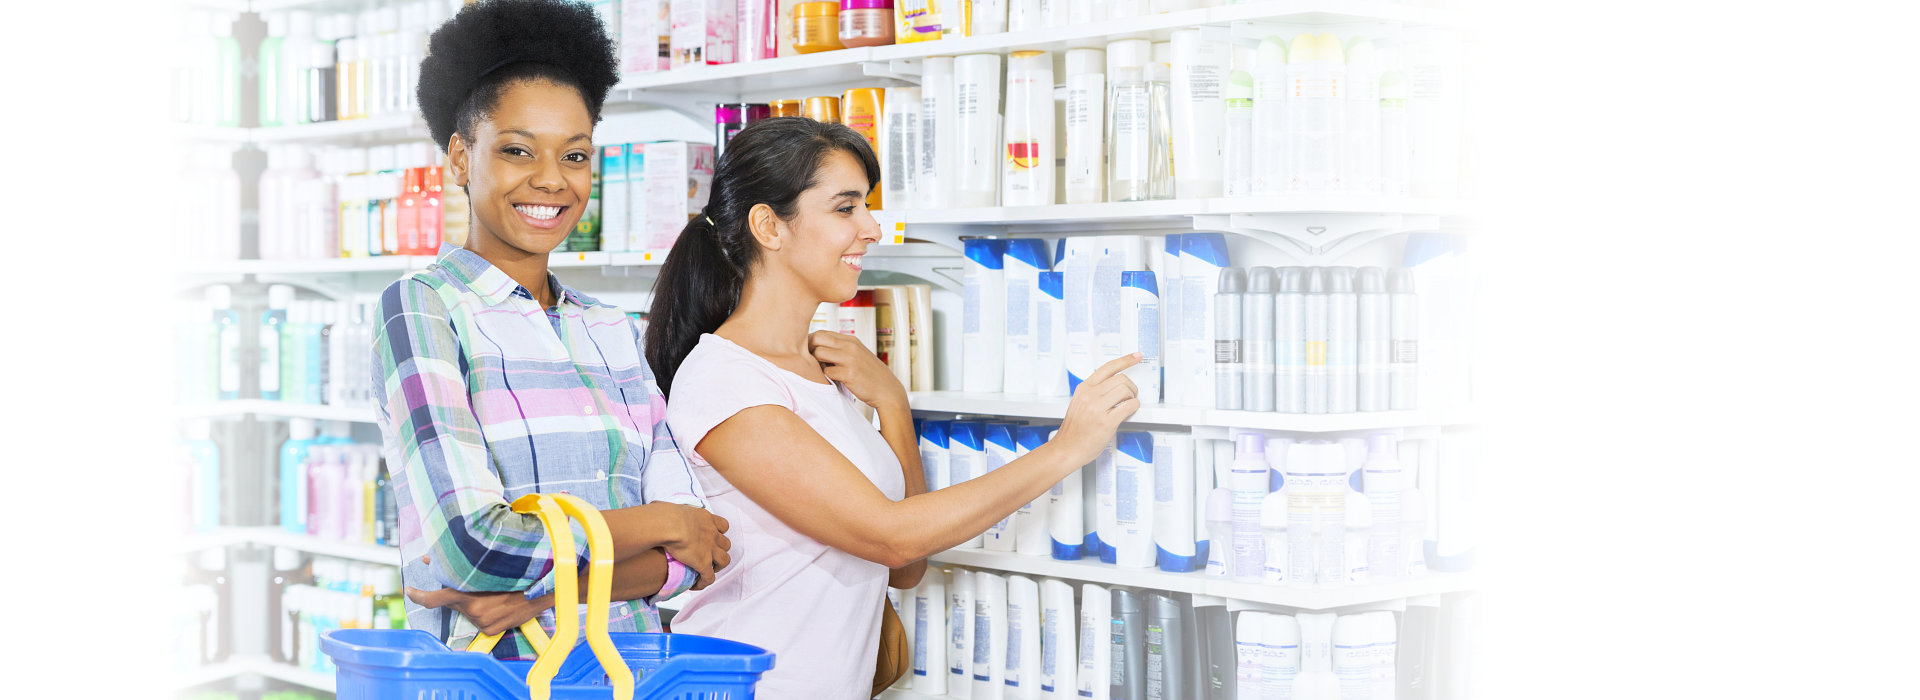 Two young women buying medicines